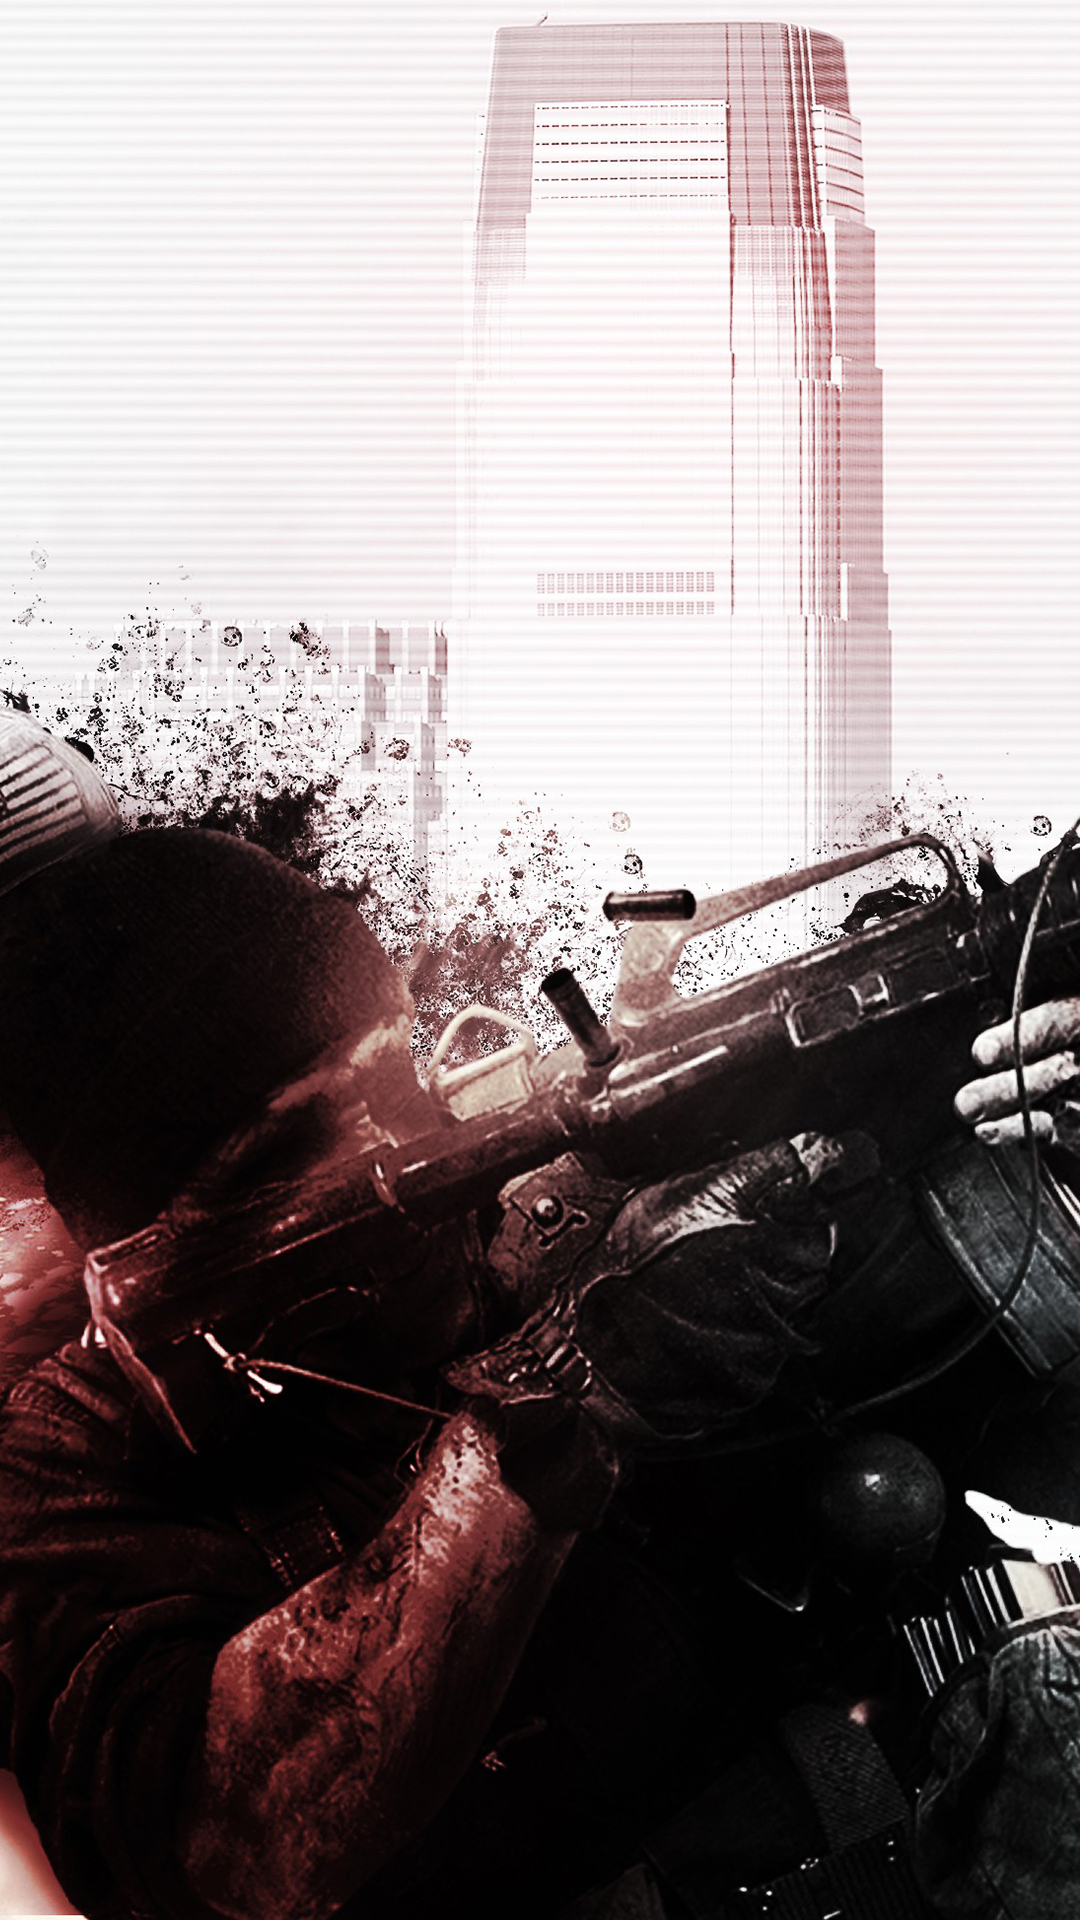 Dimensions Of A Wallpaper For Iphone X Call Of Duty Hd Wallpaper For Your Mobile Phone